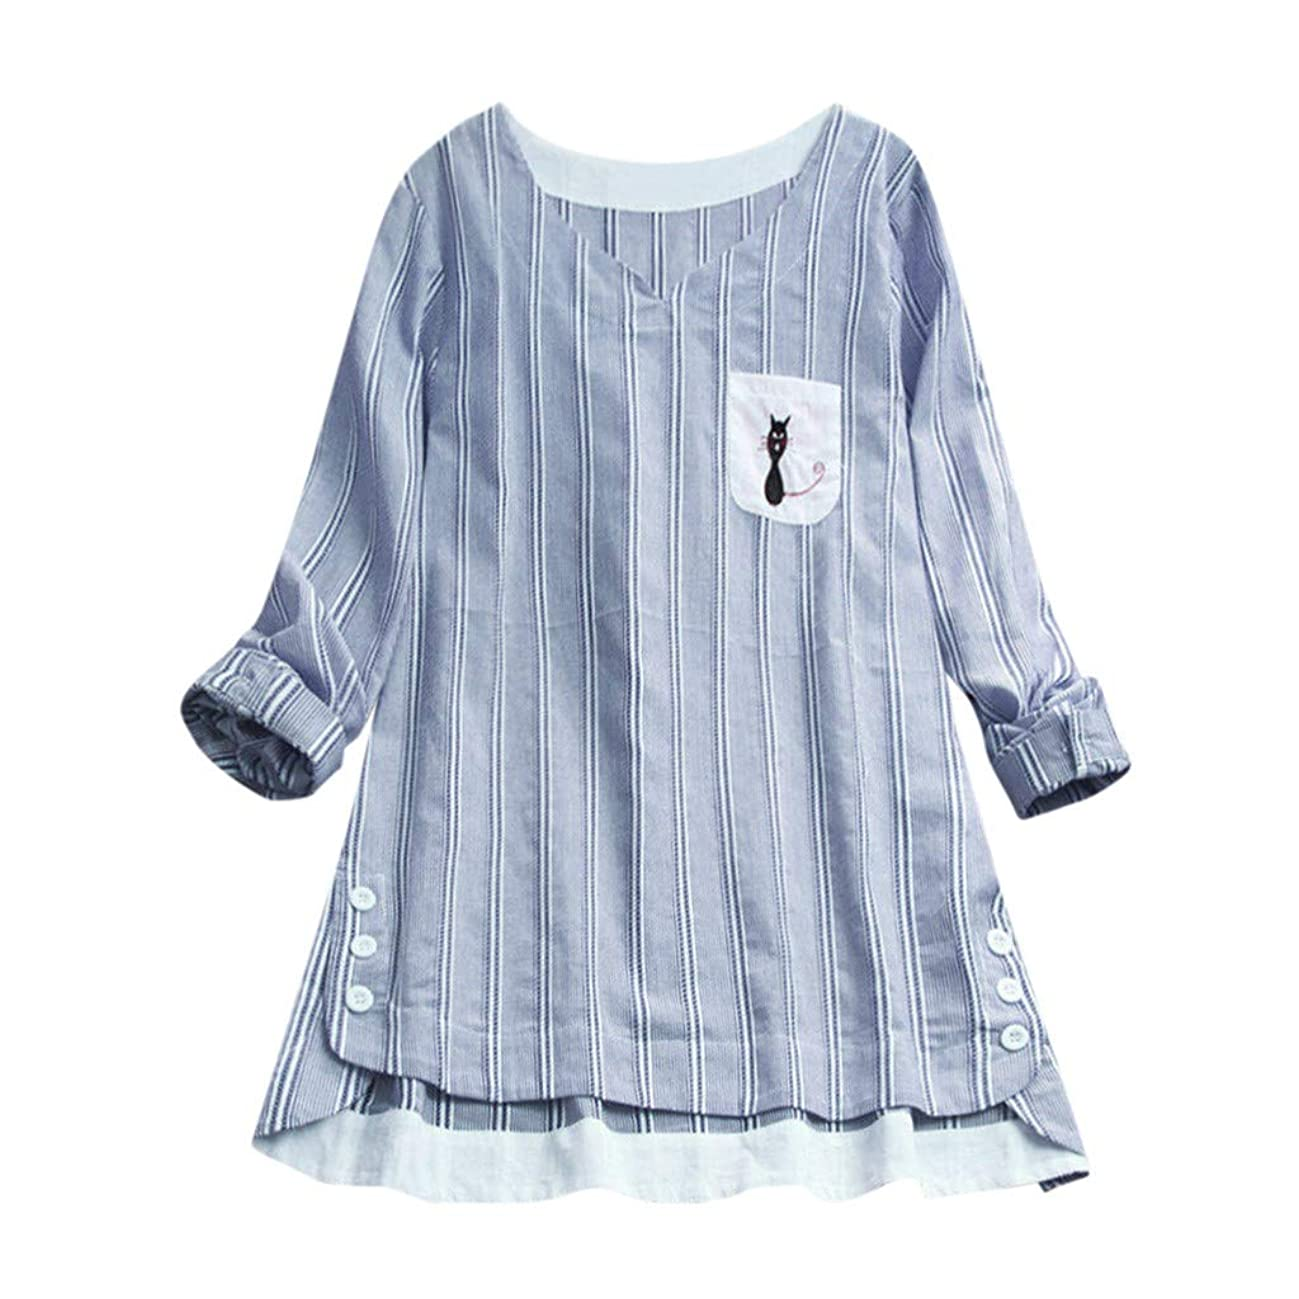 Graphic Tees for Women Miuye Striped Cat Embroidery T-Shirt Long Sleevel Tunic Tops Blouse Dress